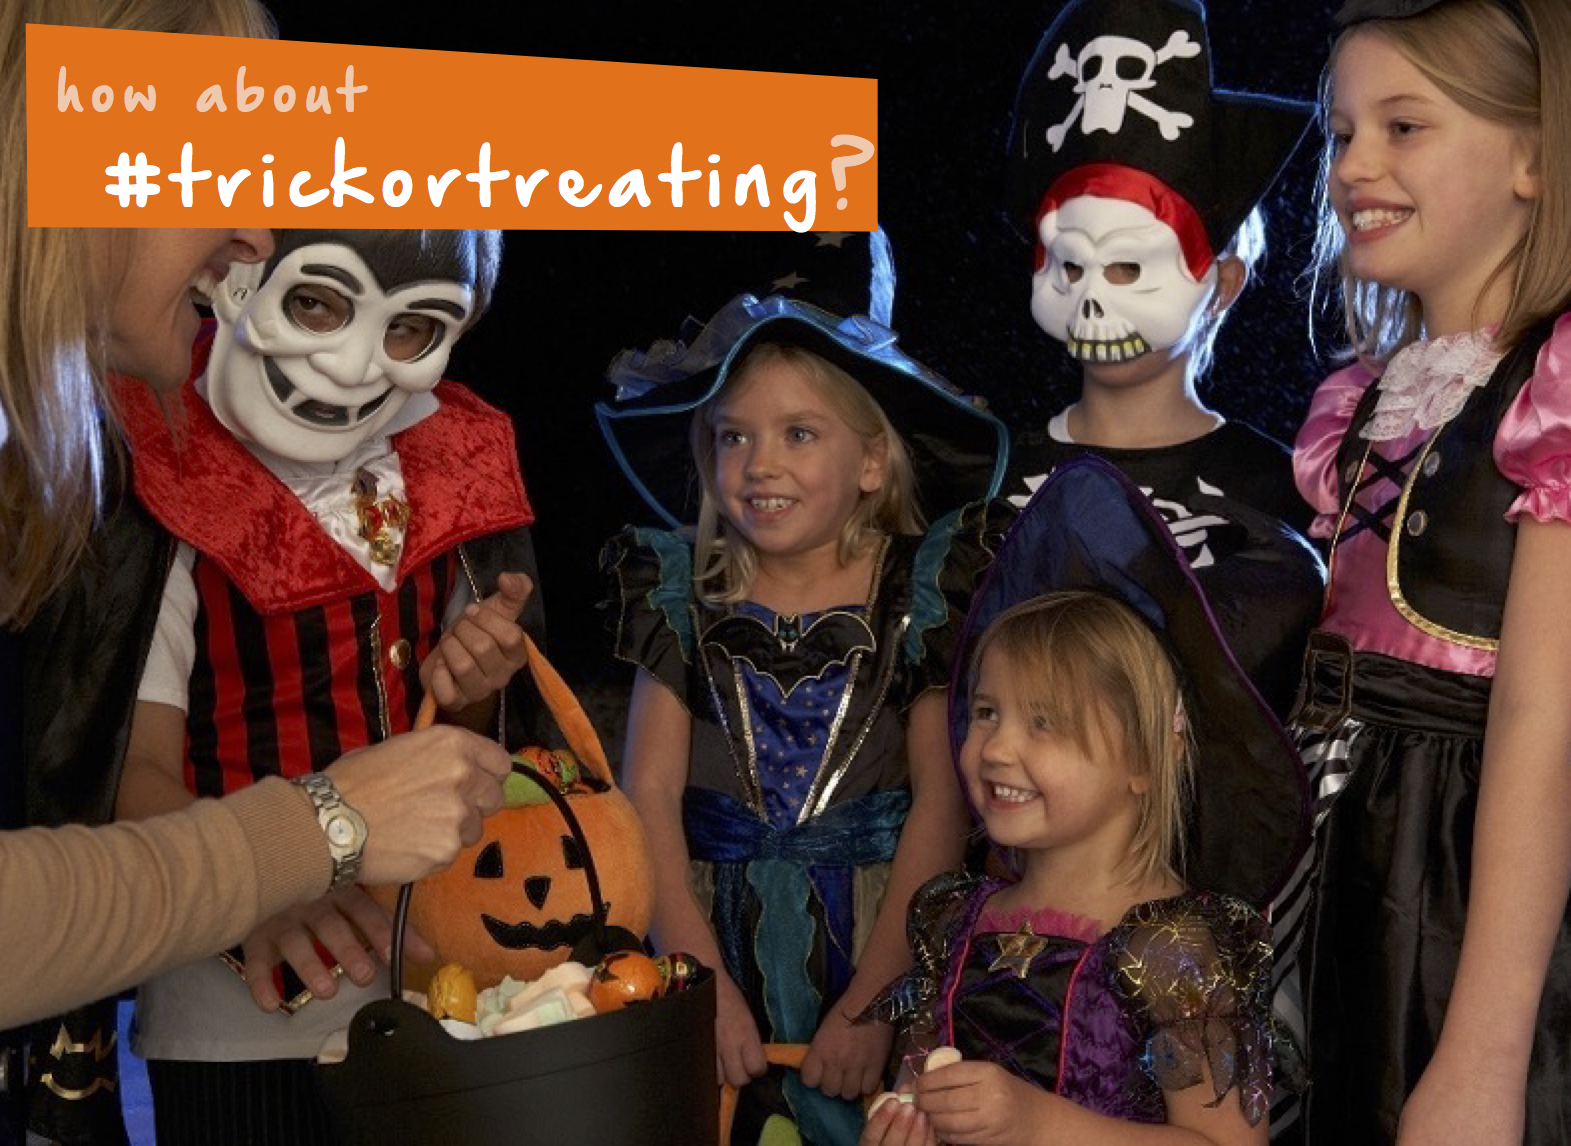 Have you tried trunkortreating? It's trickortreating